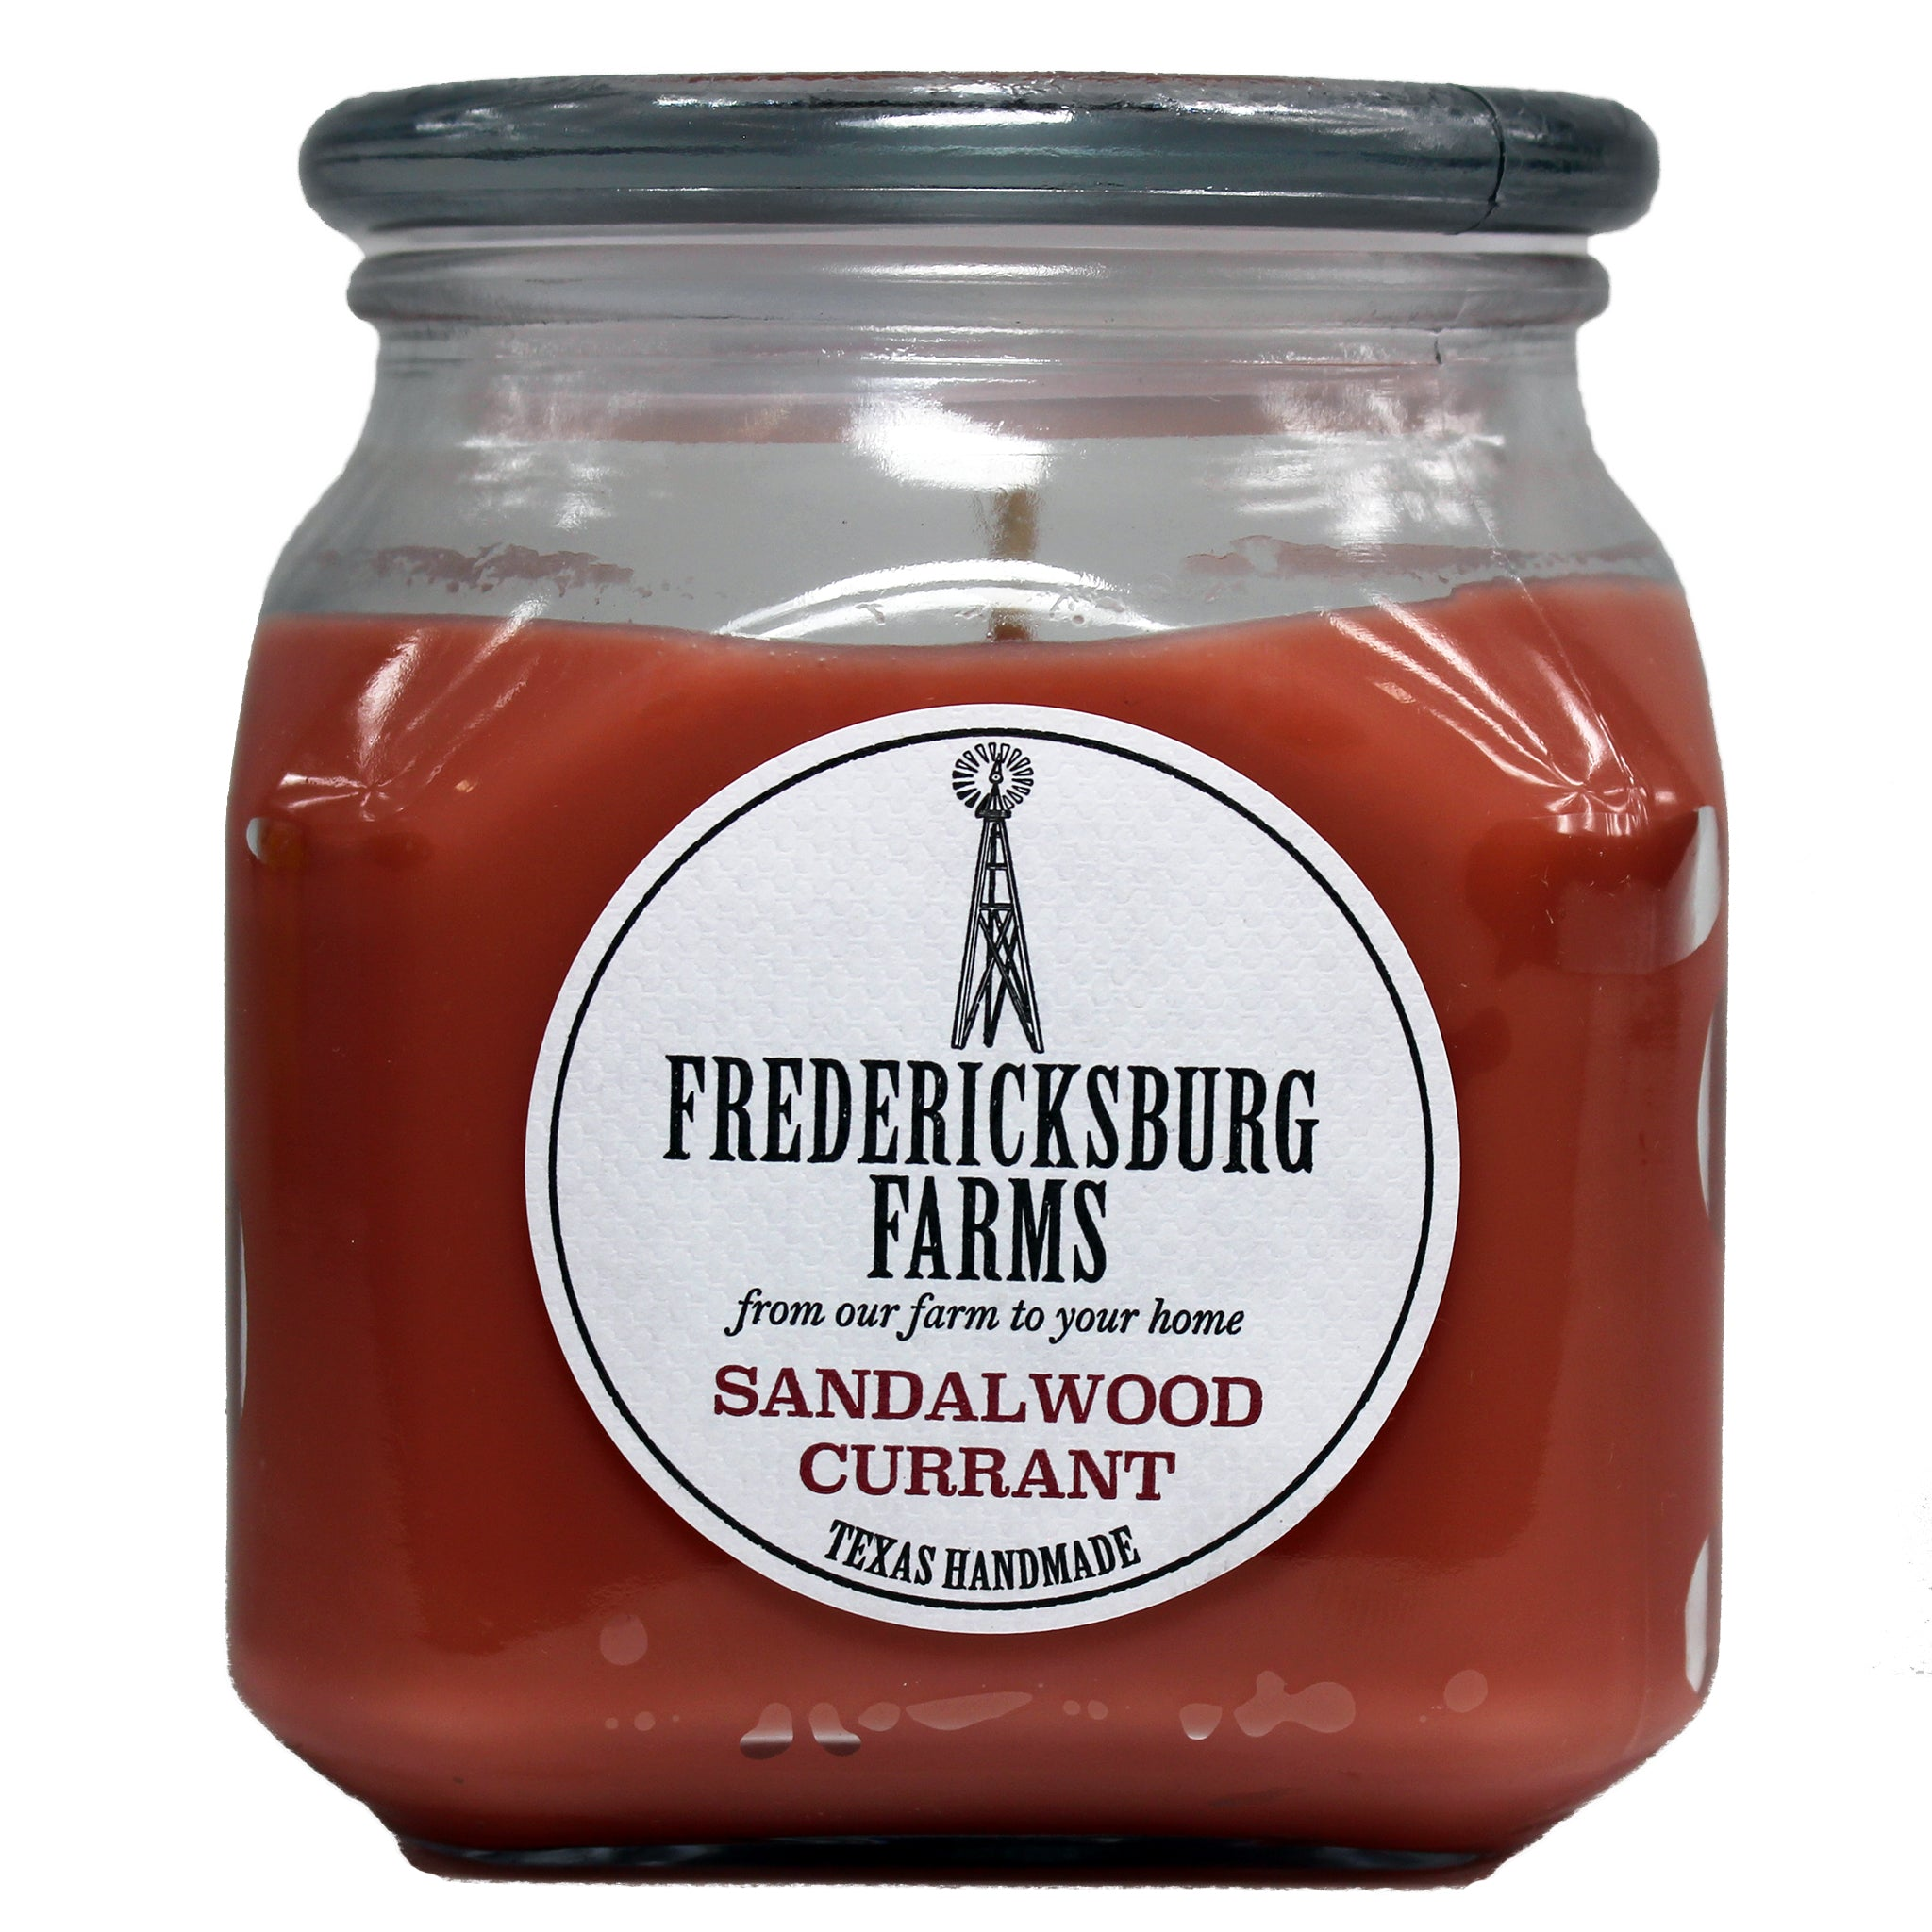 Sandalwood Currant Candle (20 oz.) - Fredericksburg Farms